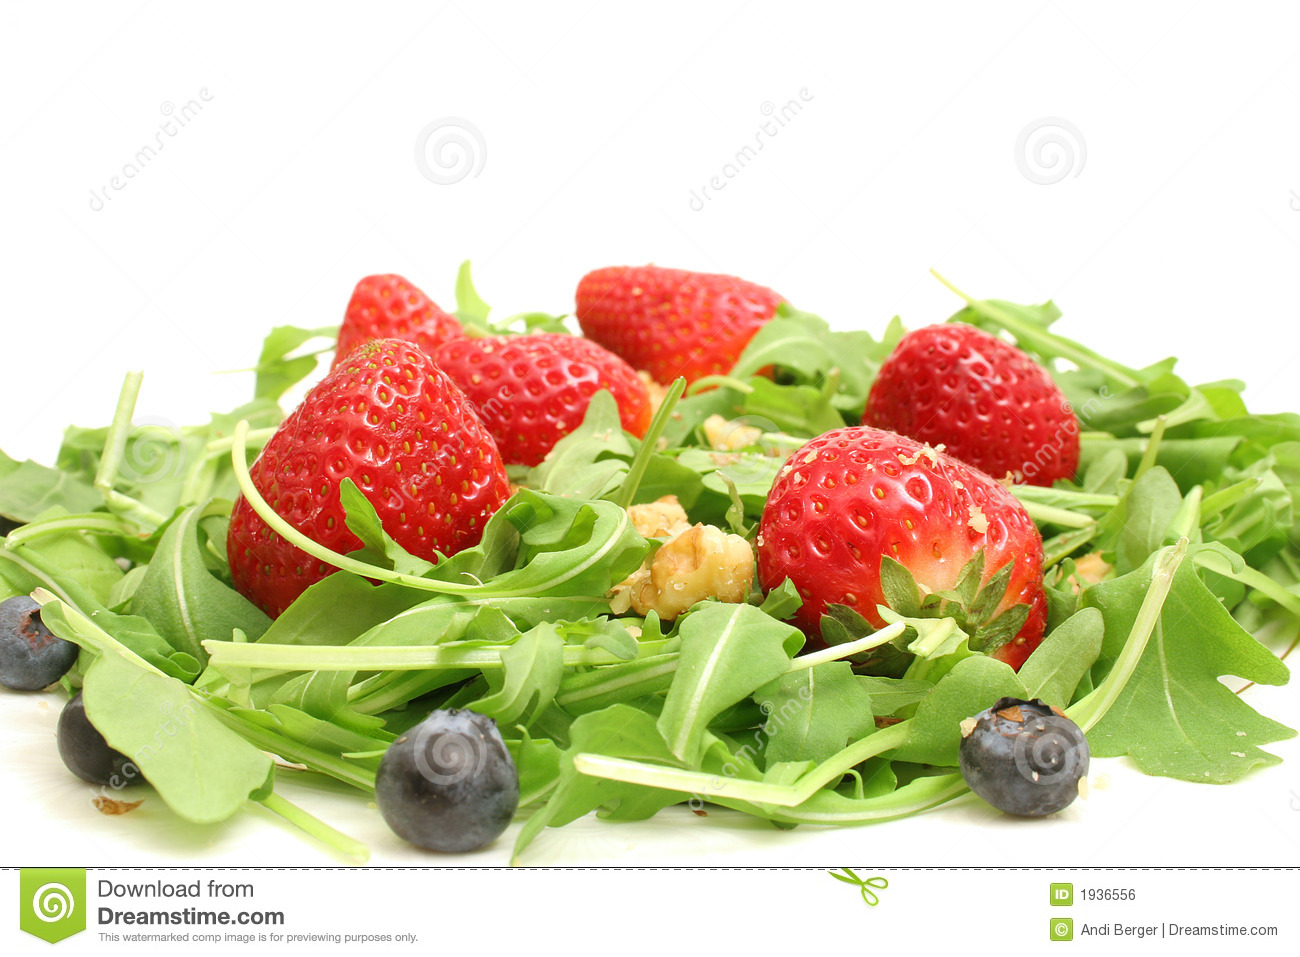 Royalty Free Stock Image: Arugula salad w/berries & nuts